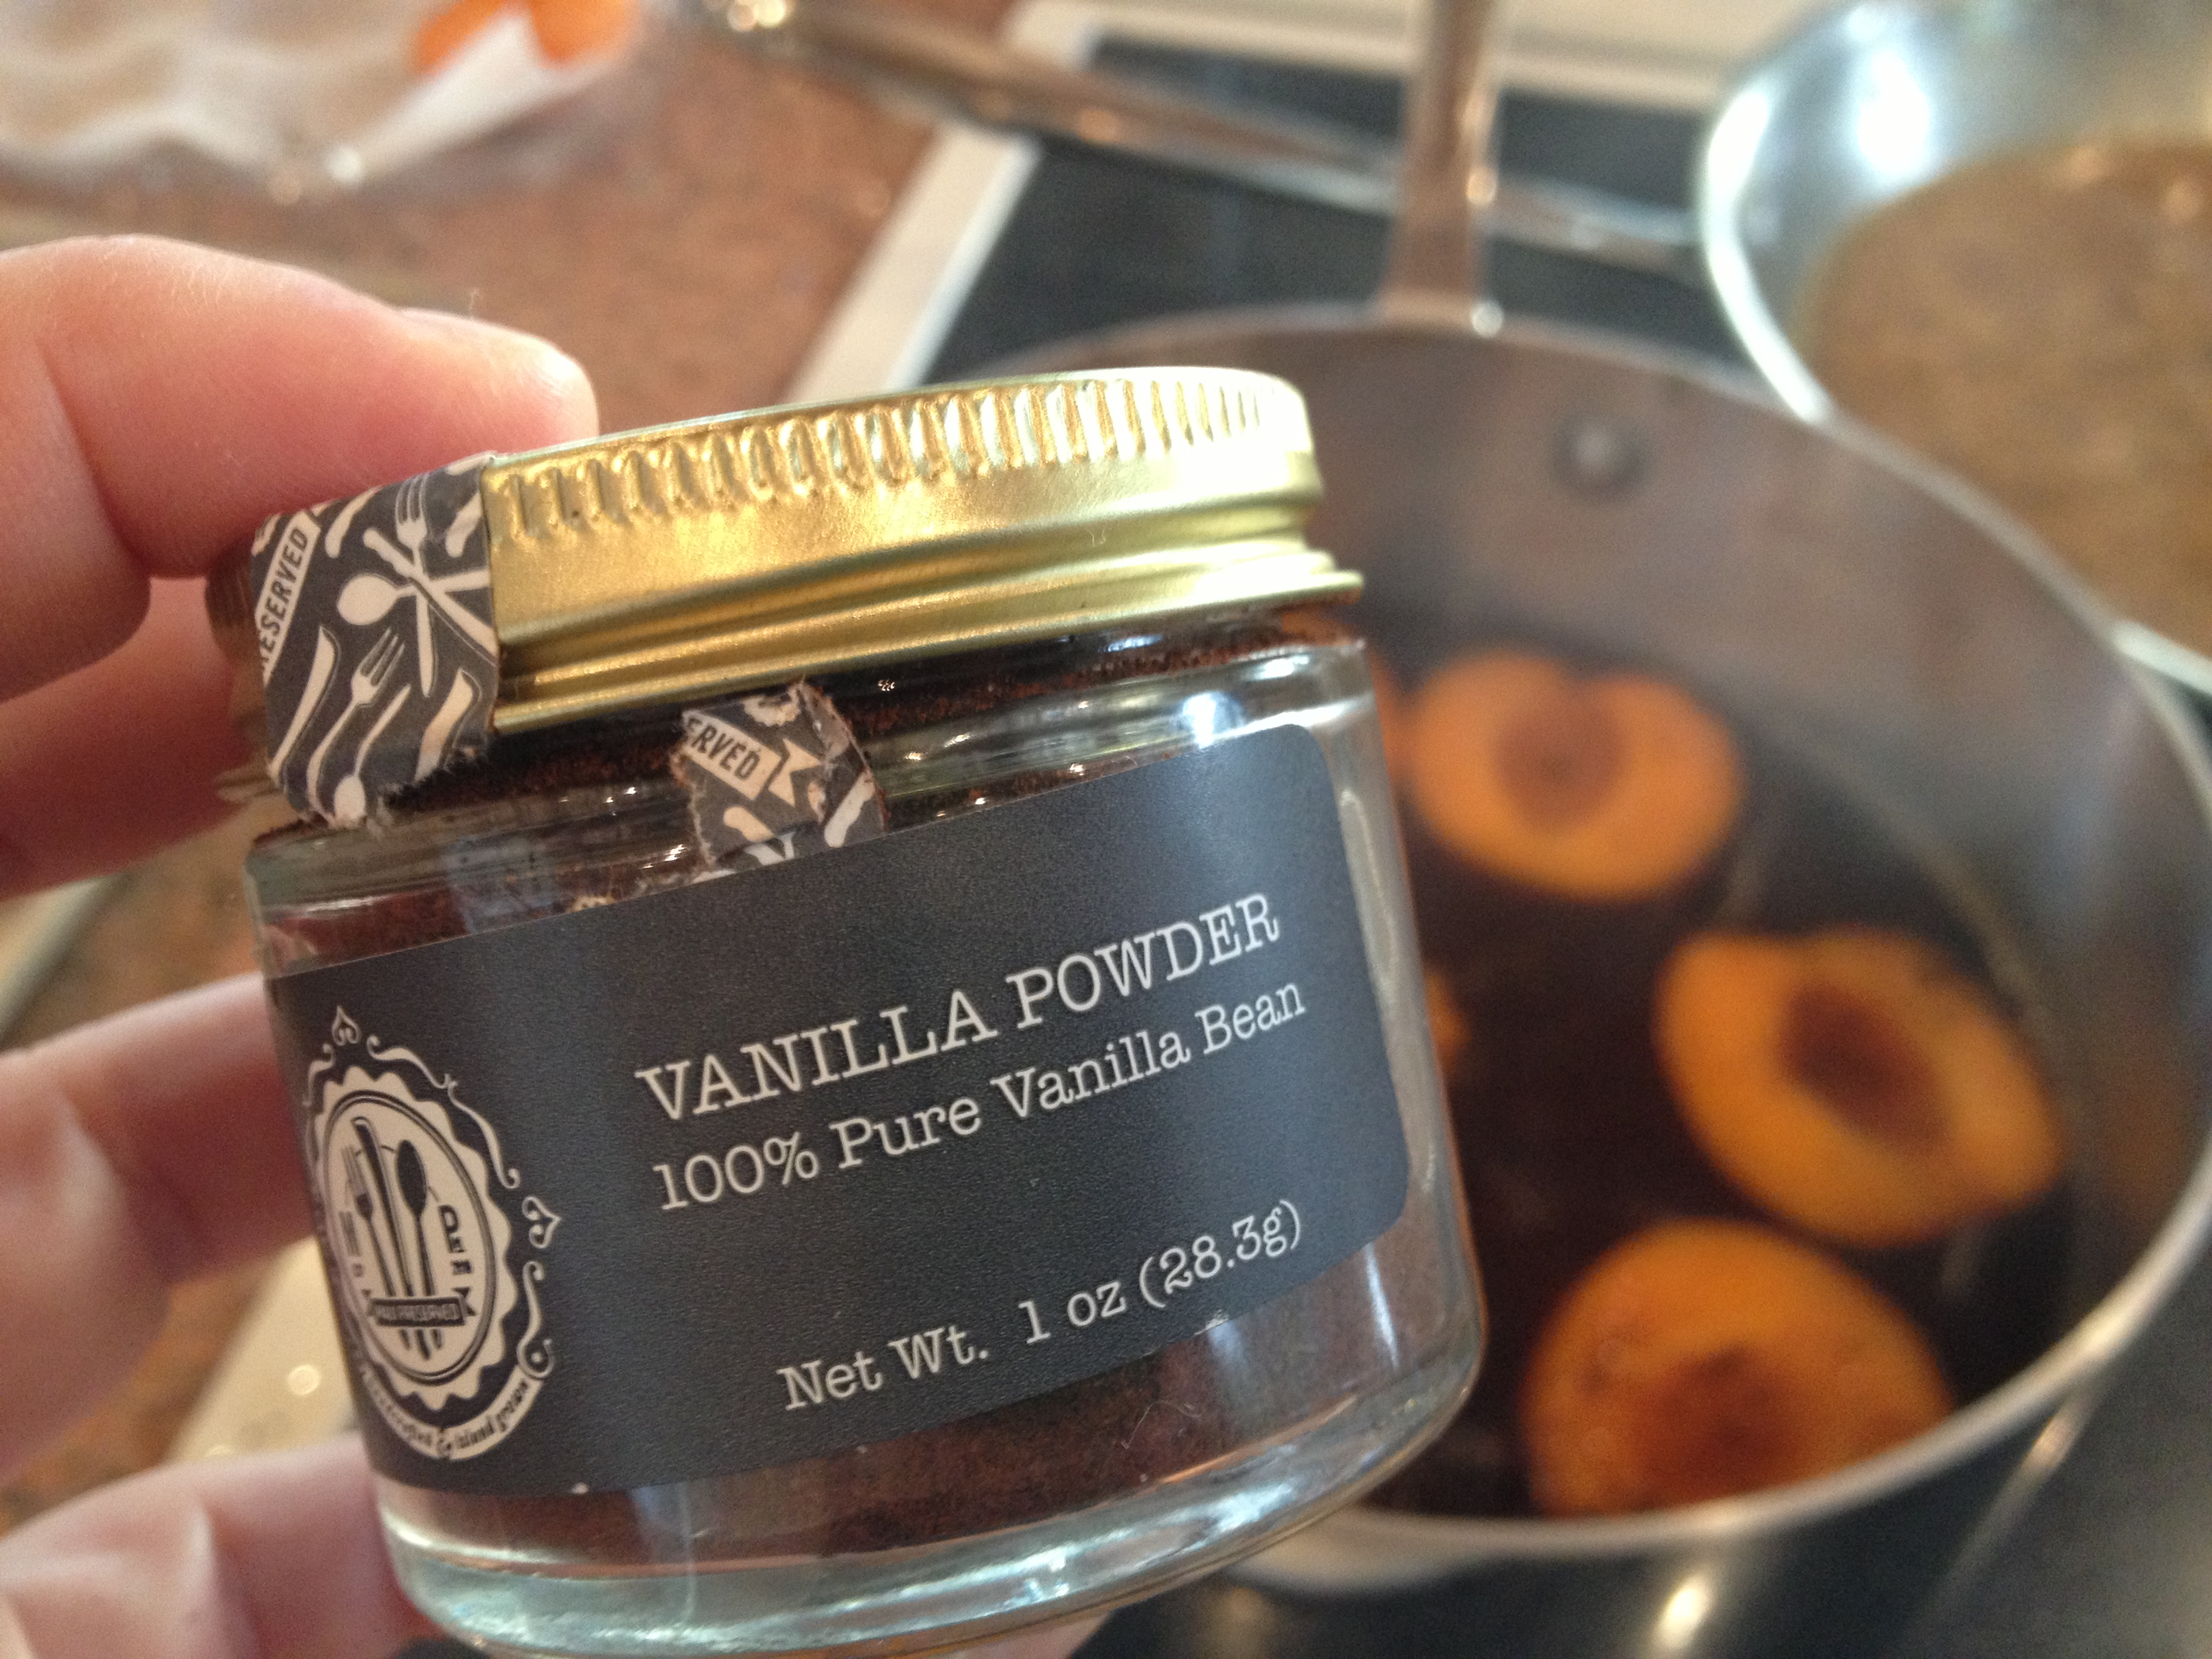 Vanilla-y Greatness in one little jar